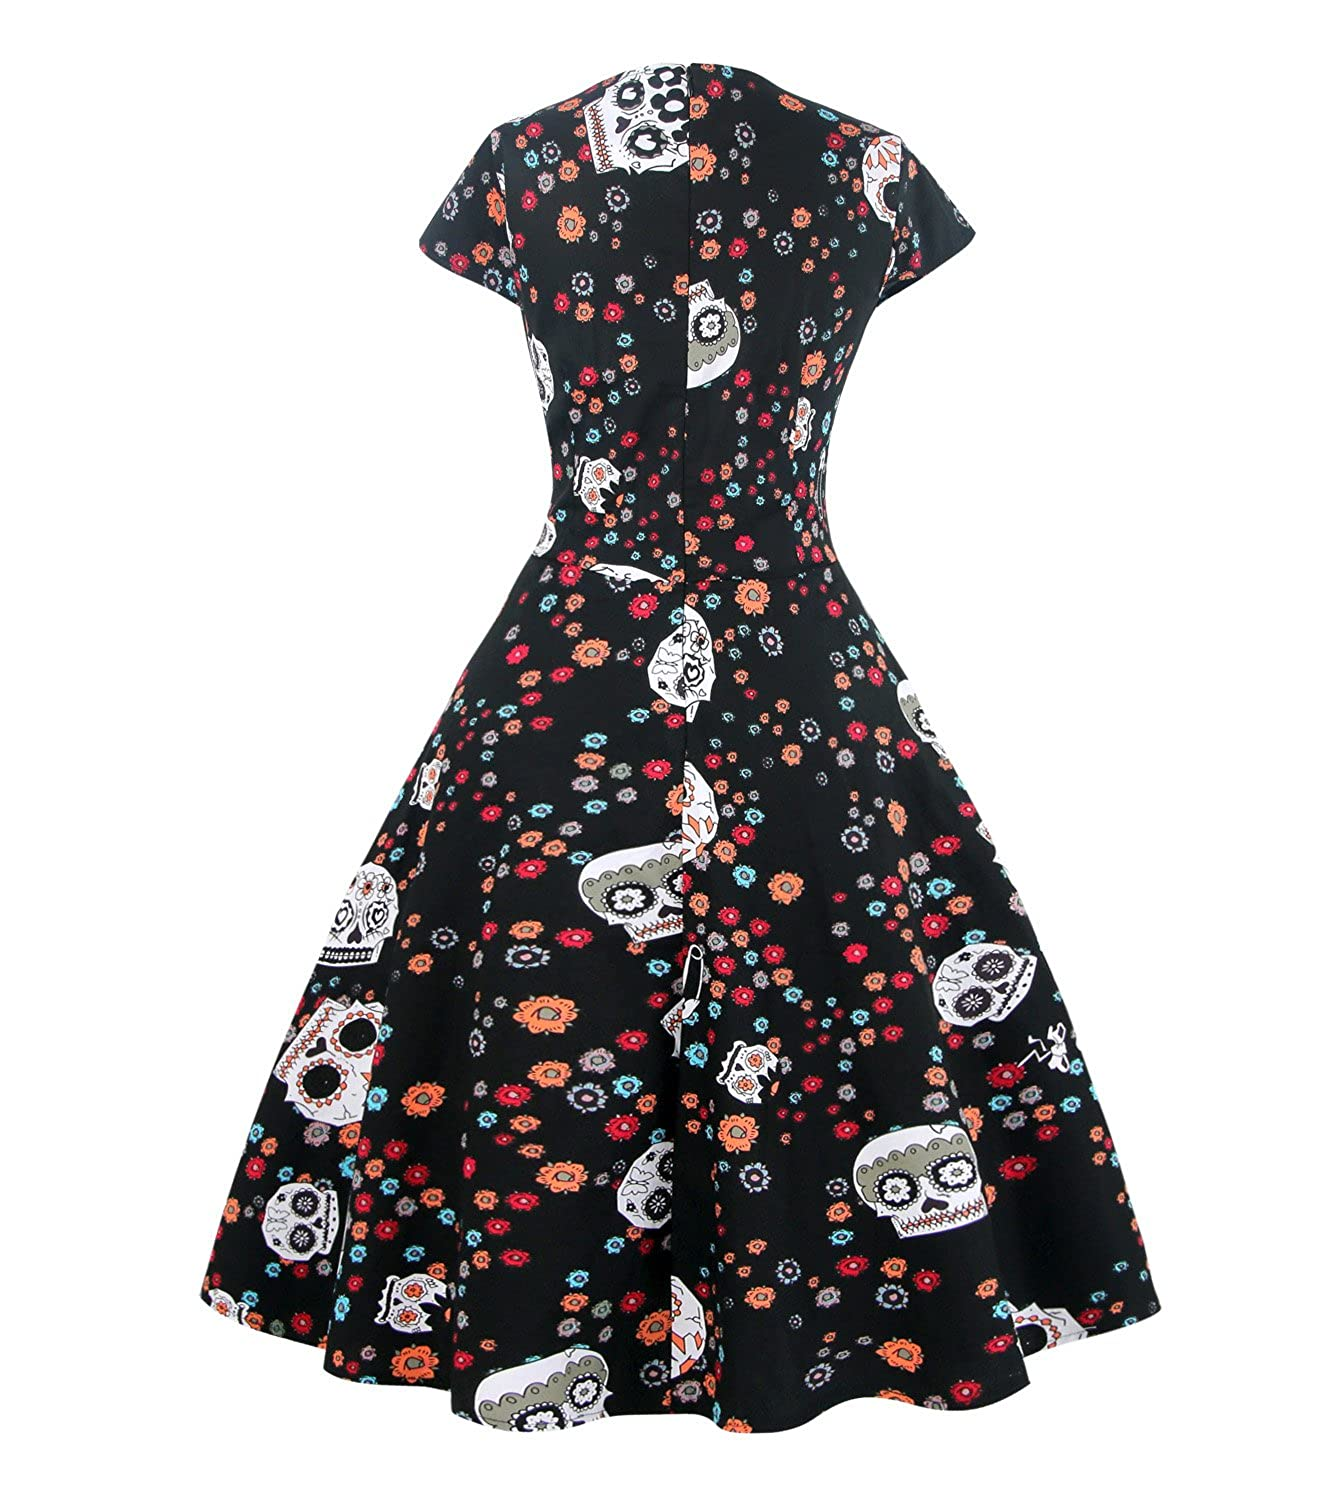 e37f504f2234 Killreal Women's Vintage Skull Floral Print Rockabilly Halloween Dress at  Amazon Women's Clothing store: